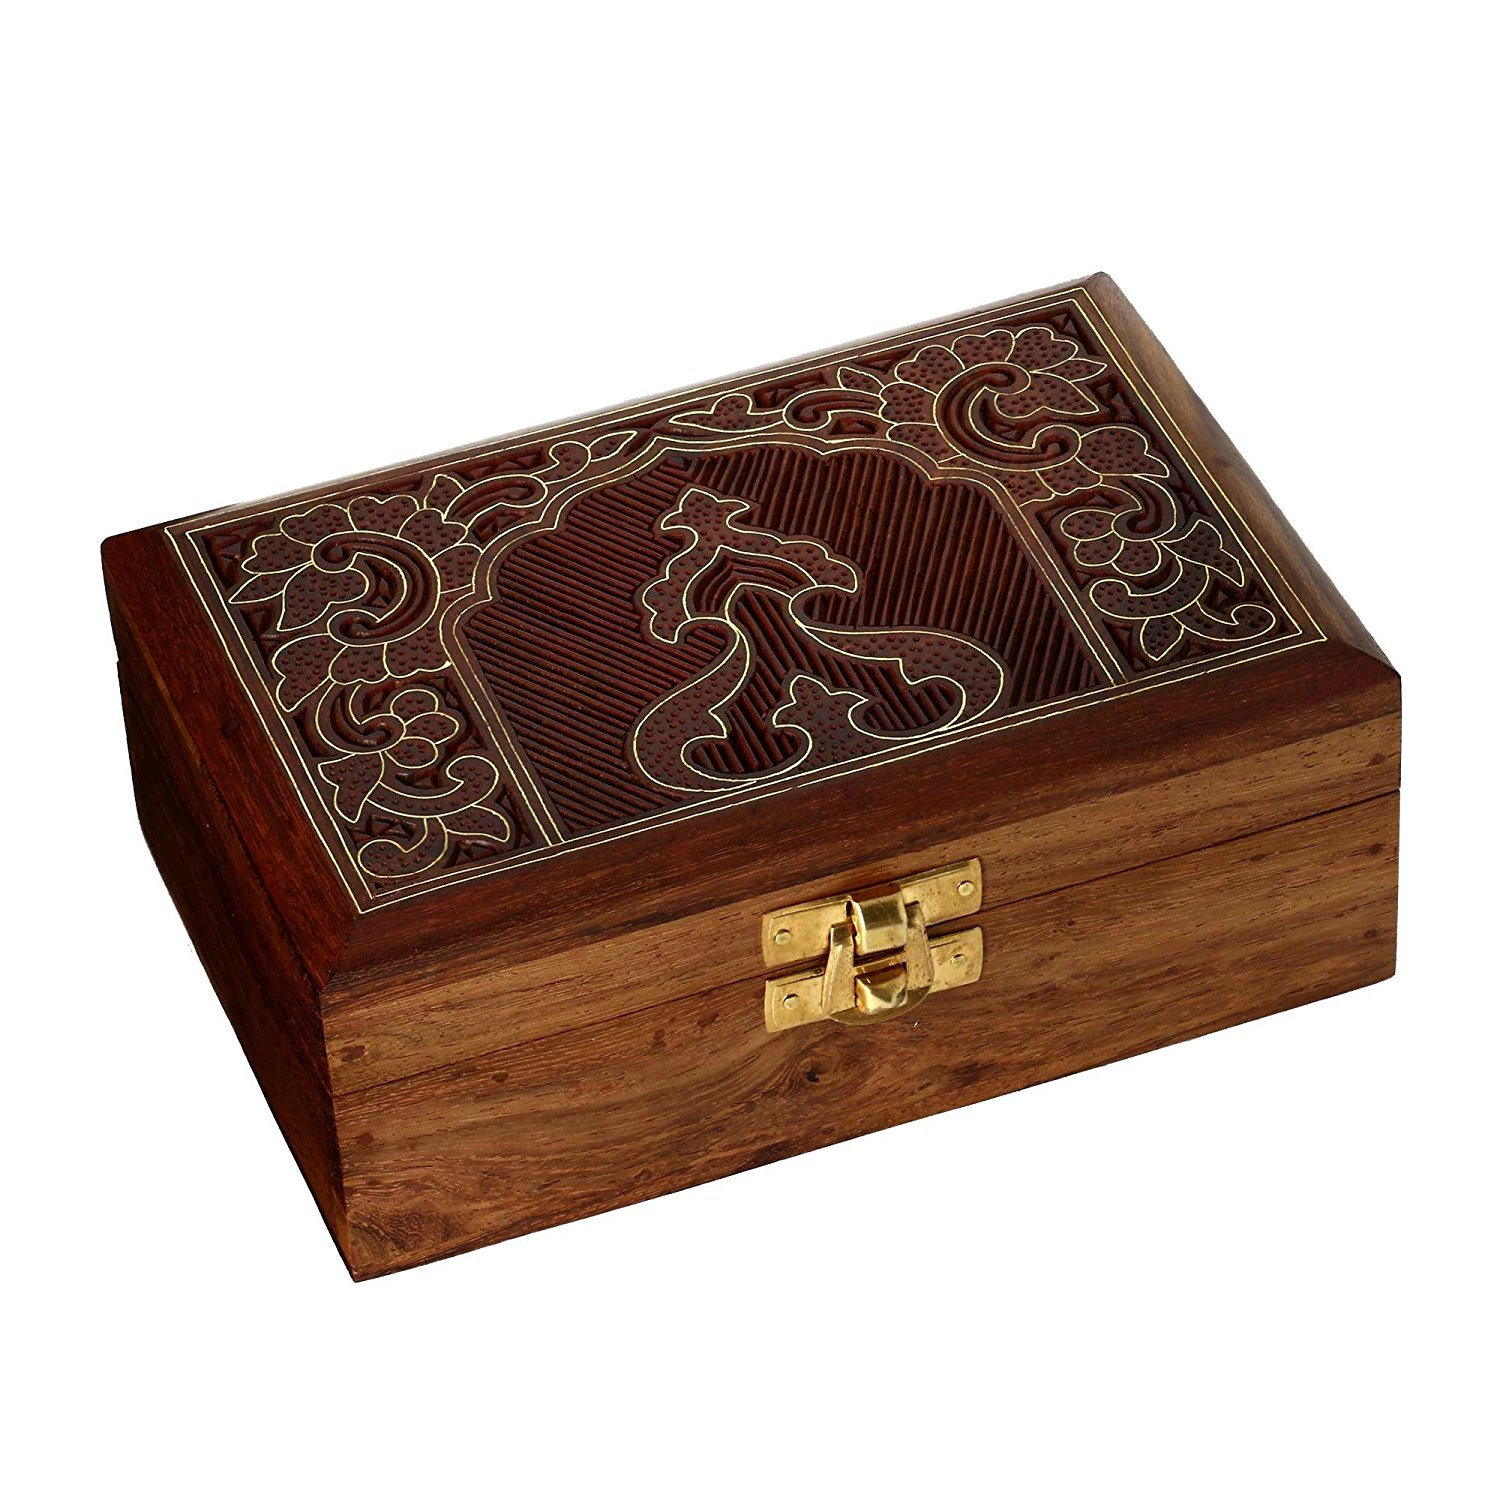 Handmade Jewelry Box Wood Carved Unusual Gifts For Women